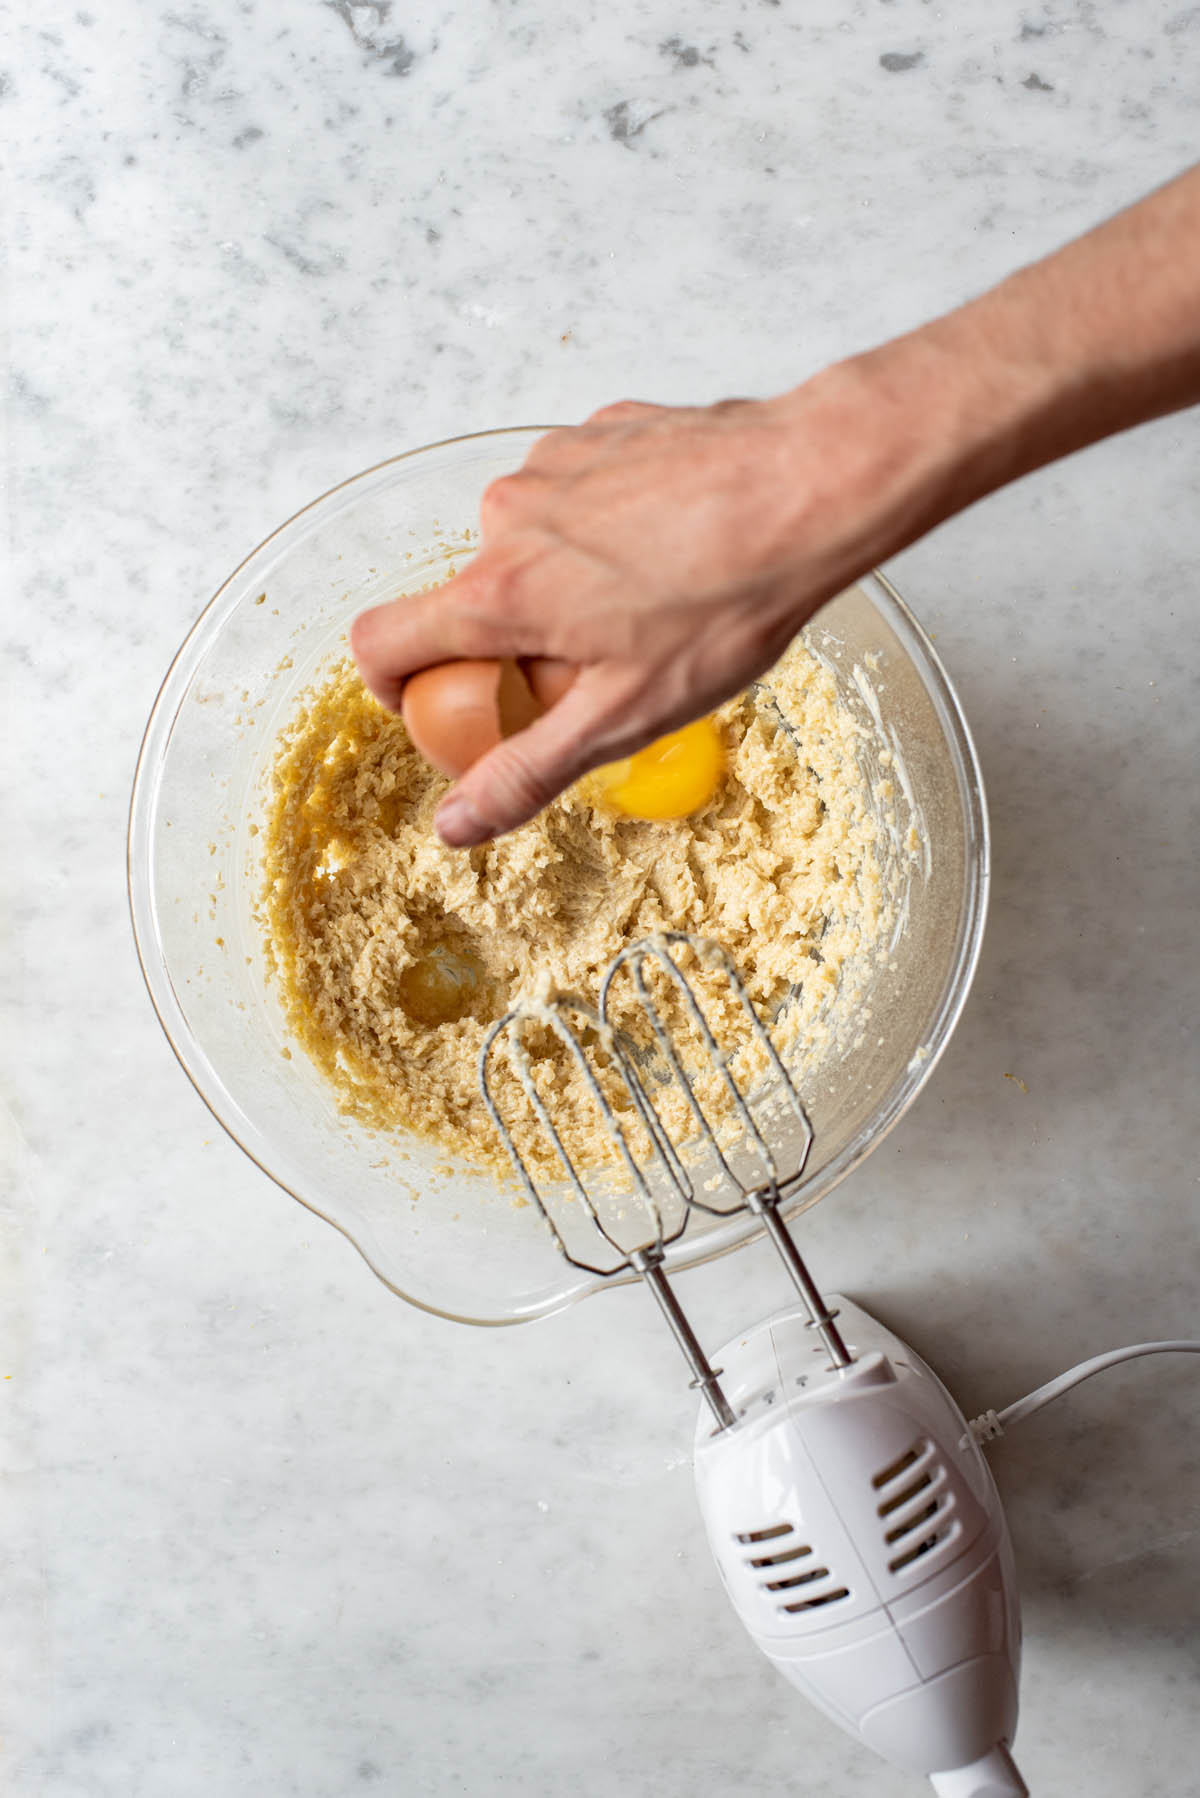 A hand cracking an egg into a glass mixing bowl with cookie dough, and a hand mixer laying nearby.